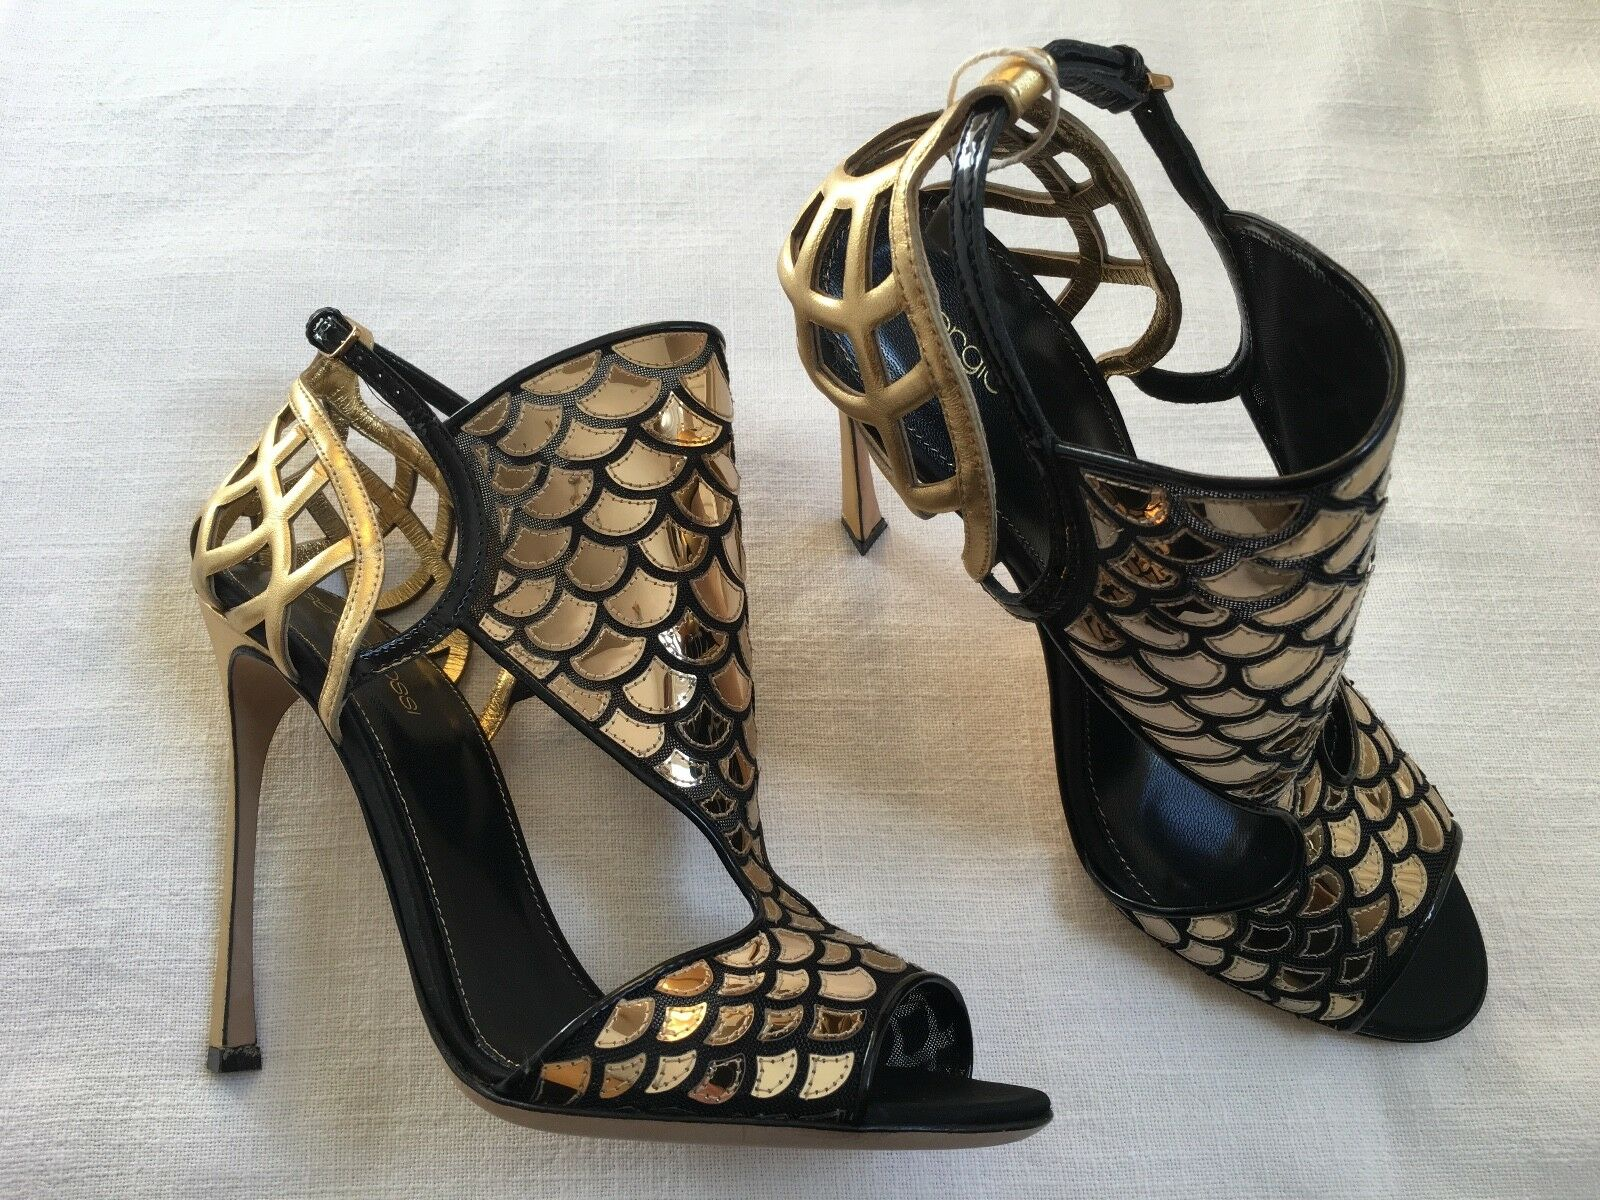 SERGIO ROSSI gold AND BLACK HIGH HEELED SANDALS SIZE 39 UK 6 BRAND NEW